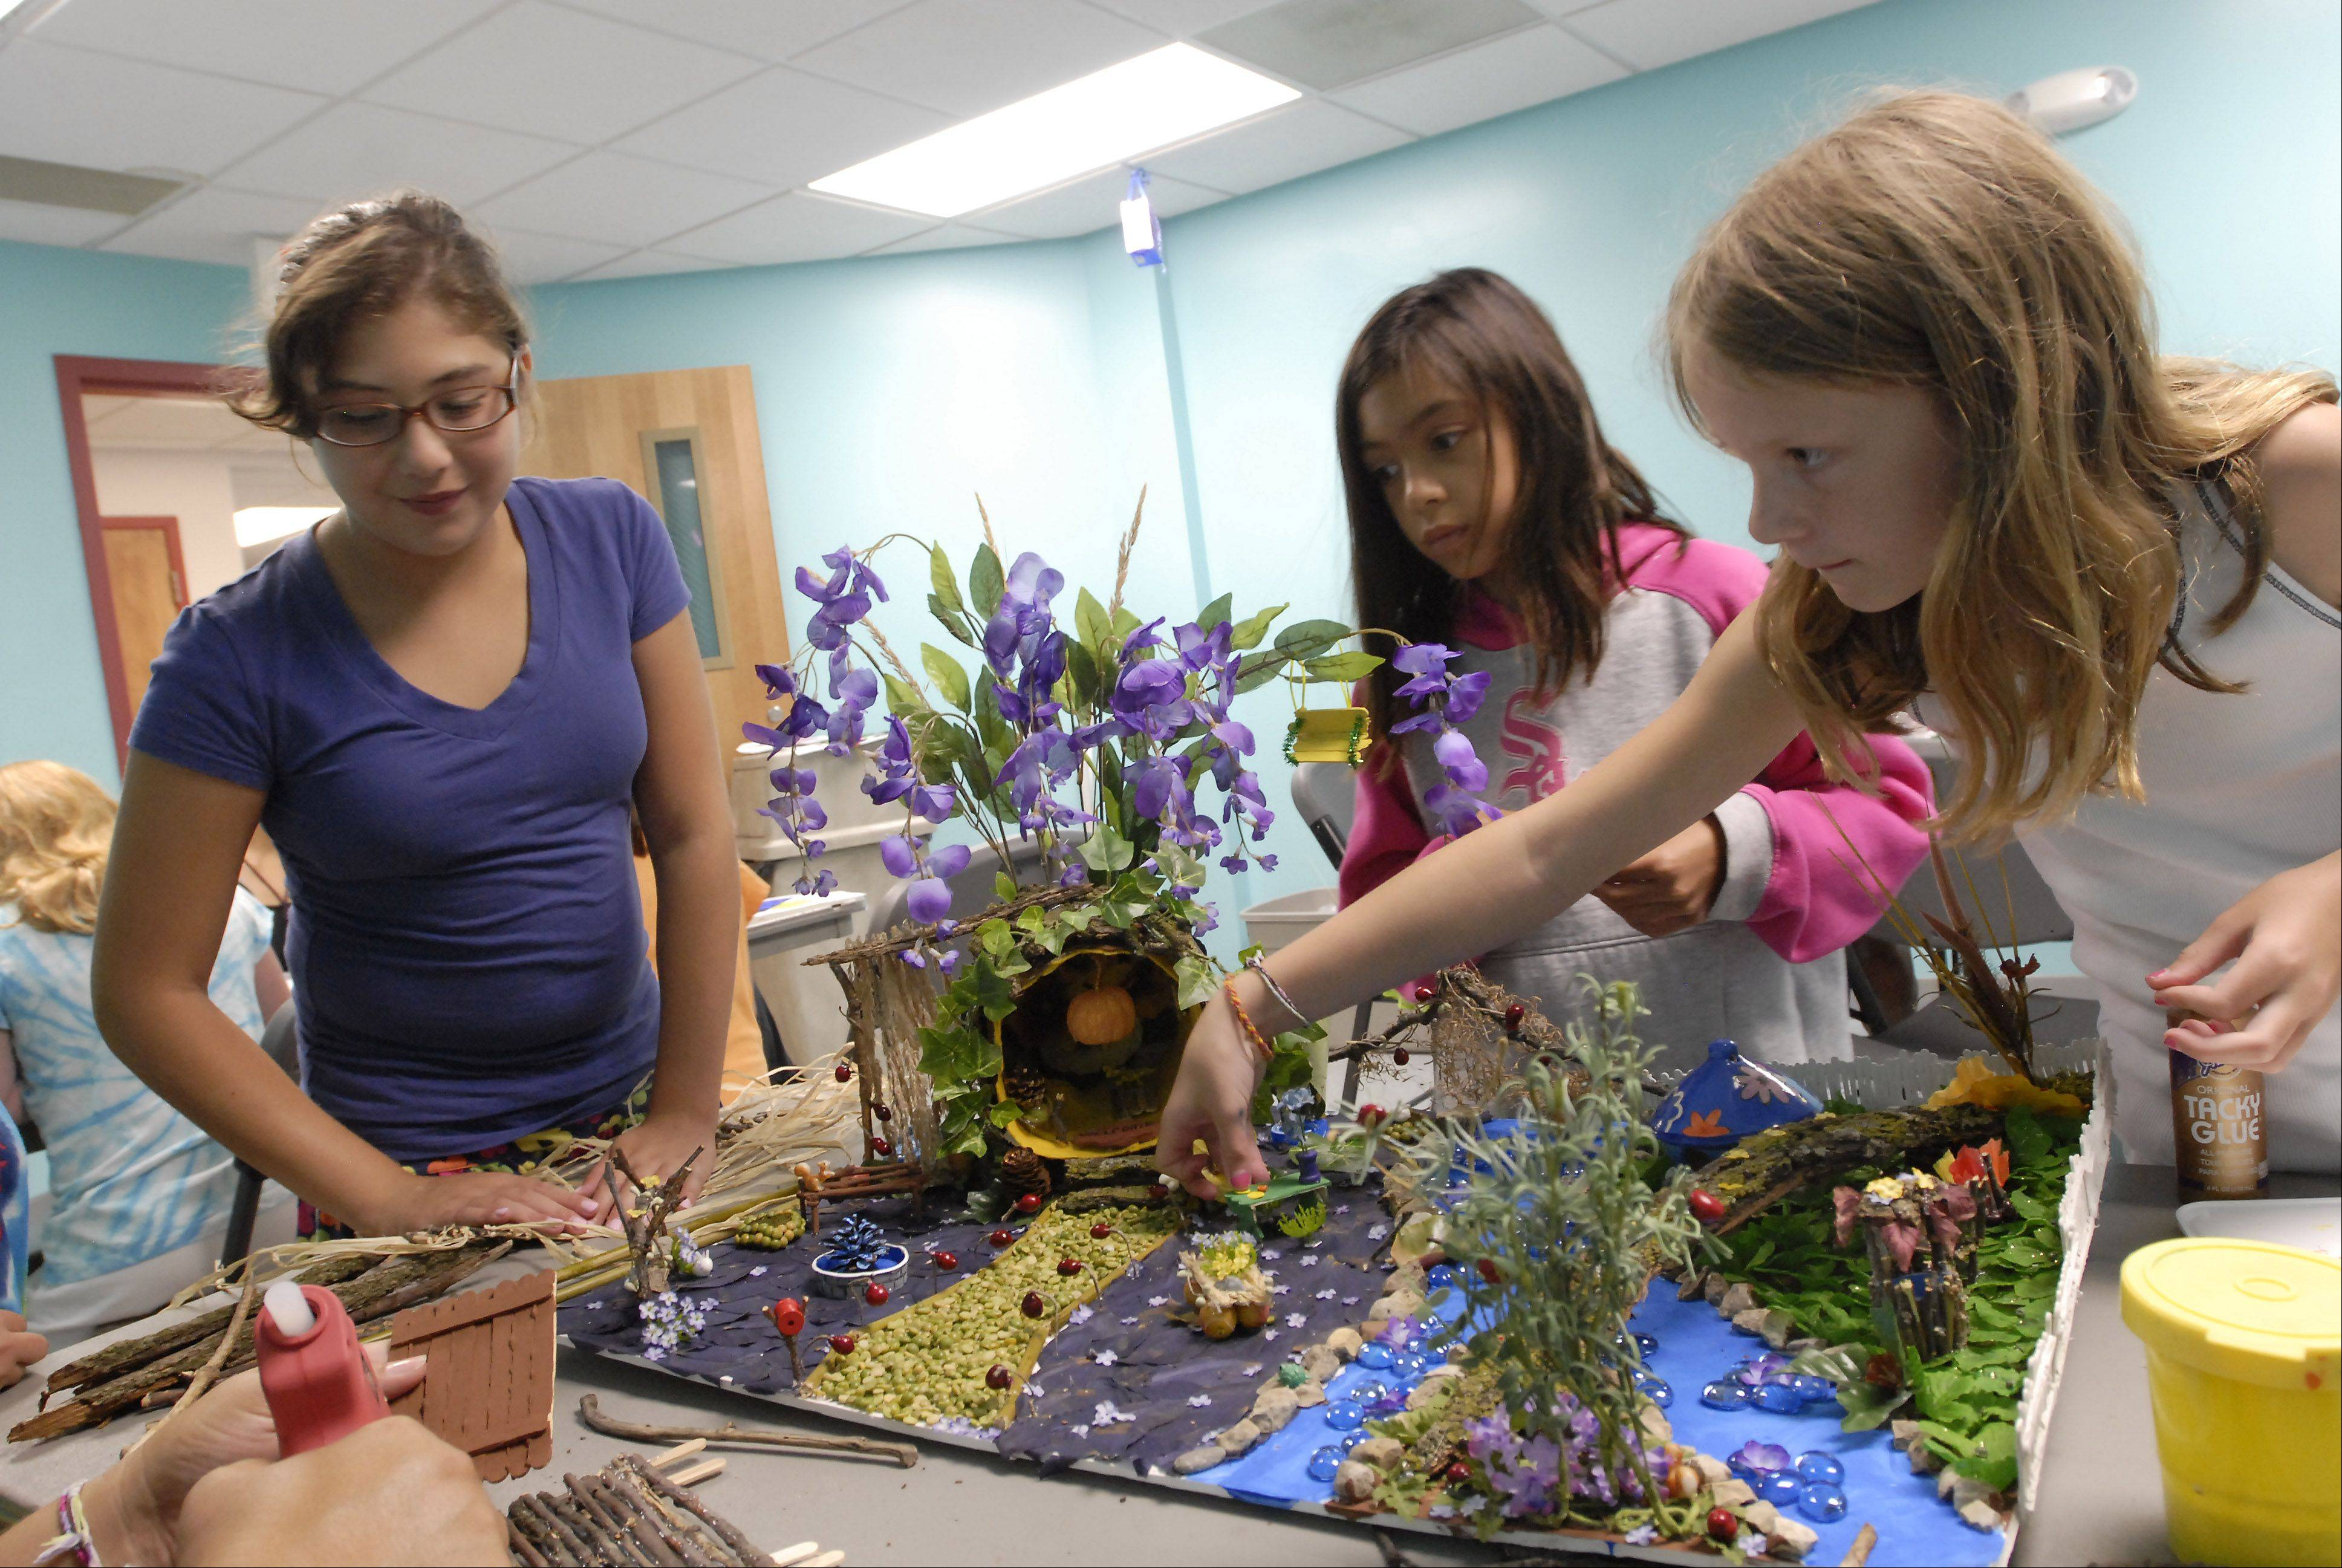 Tara Gabriel, 11, Morgan Grelyak, 8, and Lindsay Cohen, 7, all of Schaumburg, work on a fairy house in the craft room at the Schaumburg Park District Day Camp as the heat wave continues in the area Tuesday afternoon.